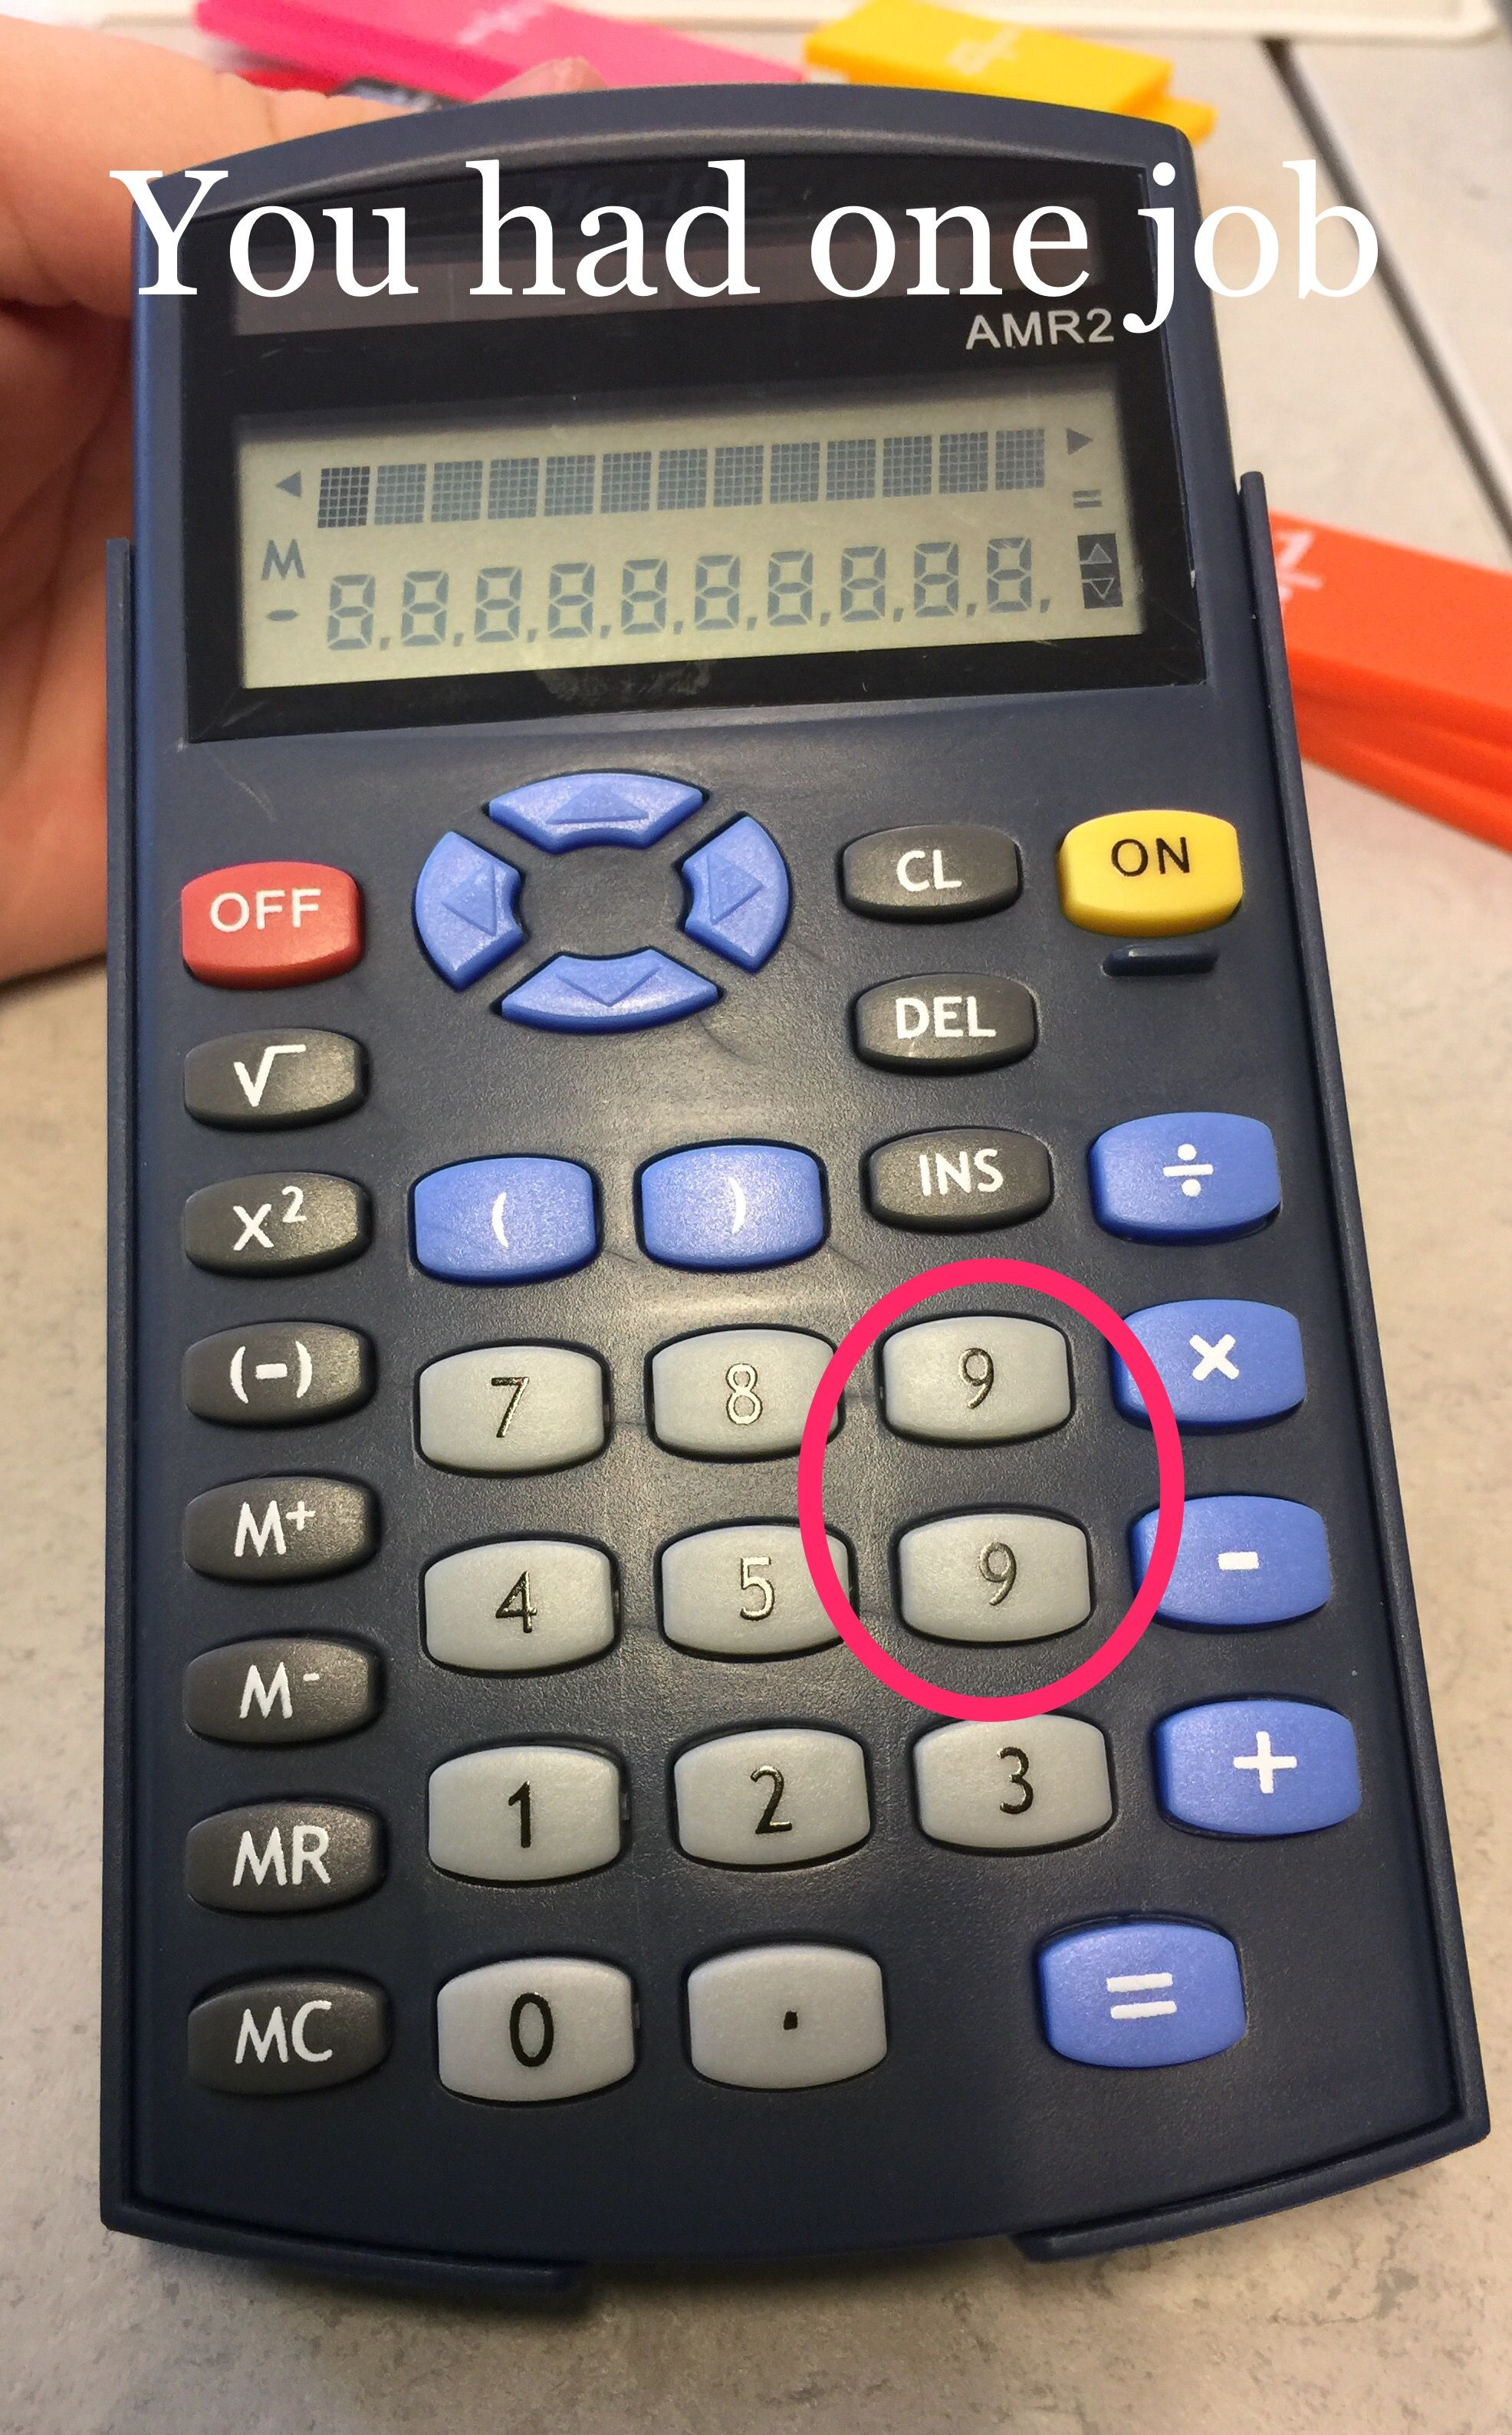 You Had One Job This Picture Was Taken In My School After That We Realised That One Of The Calculators Had Two Nines Instead One Job You Had One Job Job